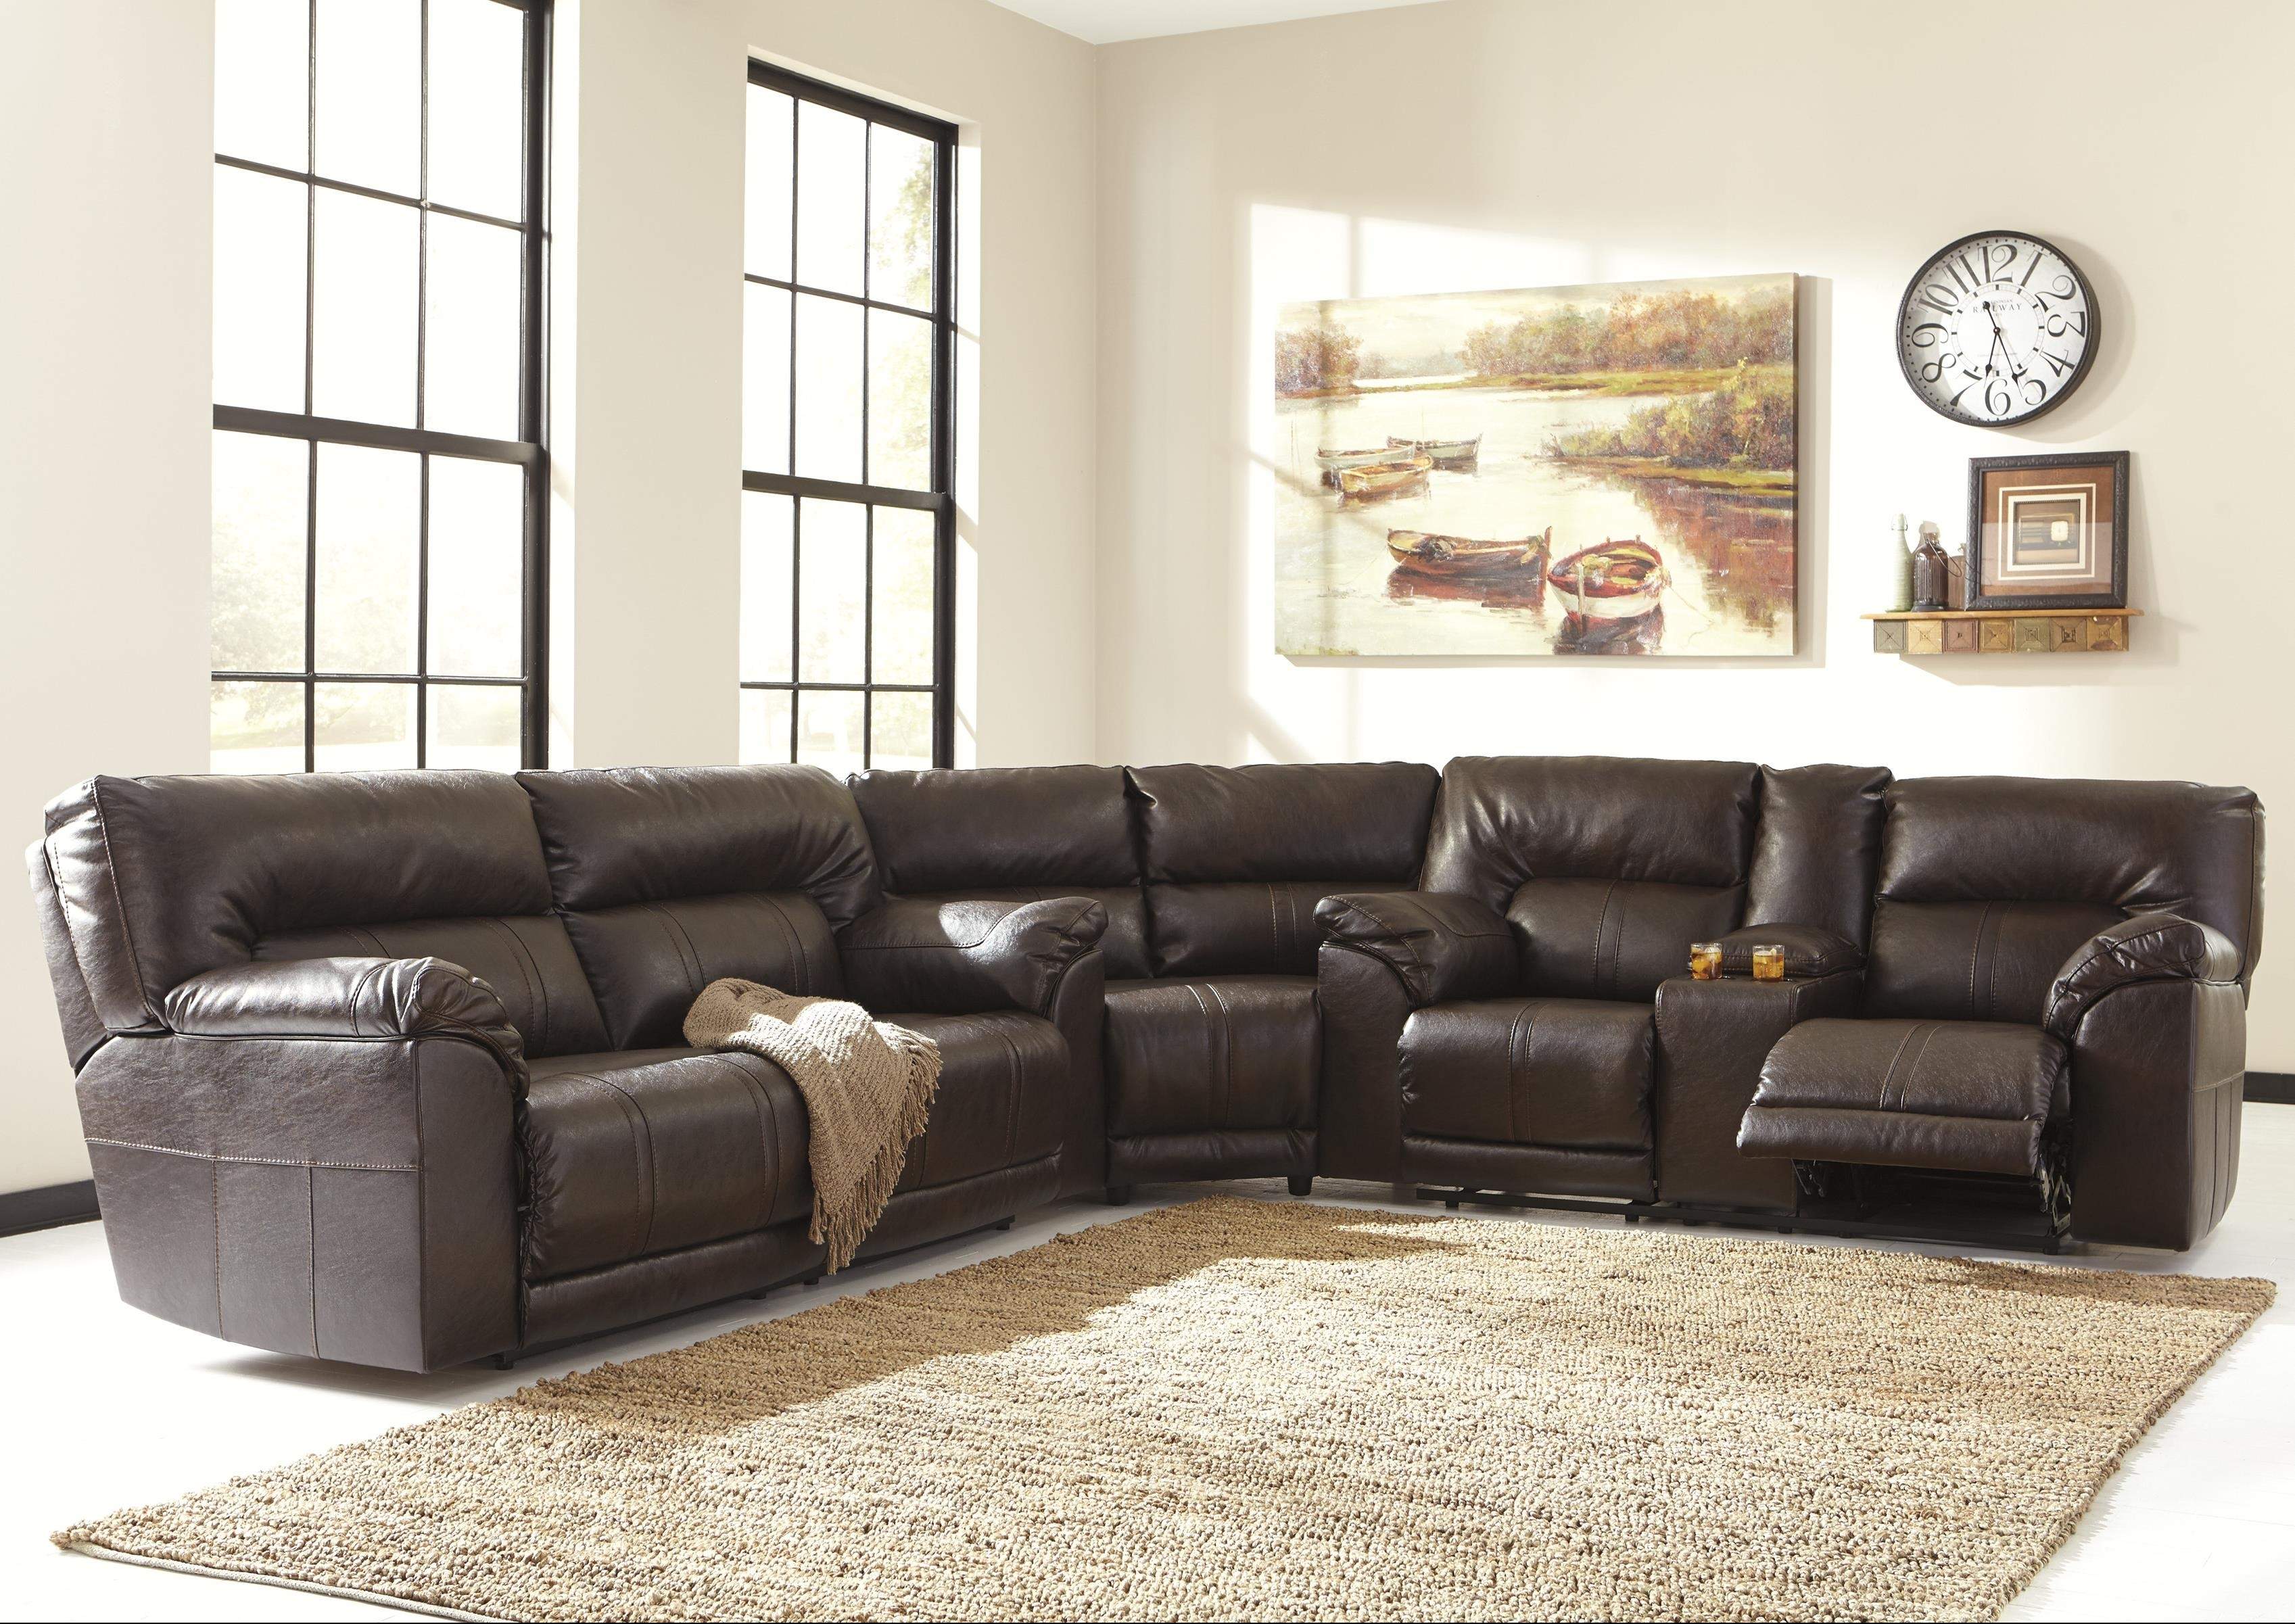 Benchcraftashley Barrettsville Durablend® 3 Piece Reclining Inside Sectional Sofas At Birmingham Al (Image 1 of 10)